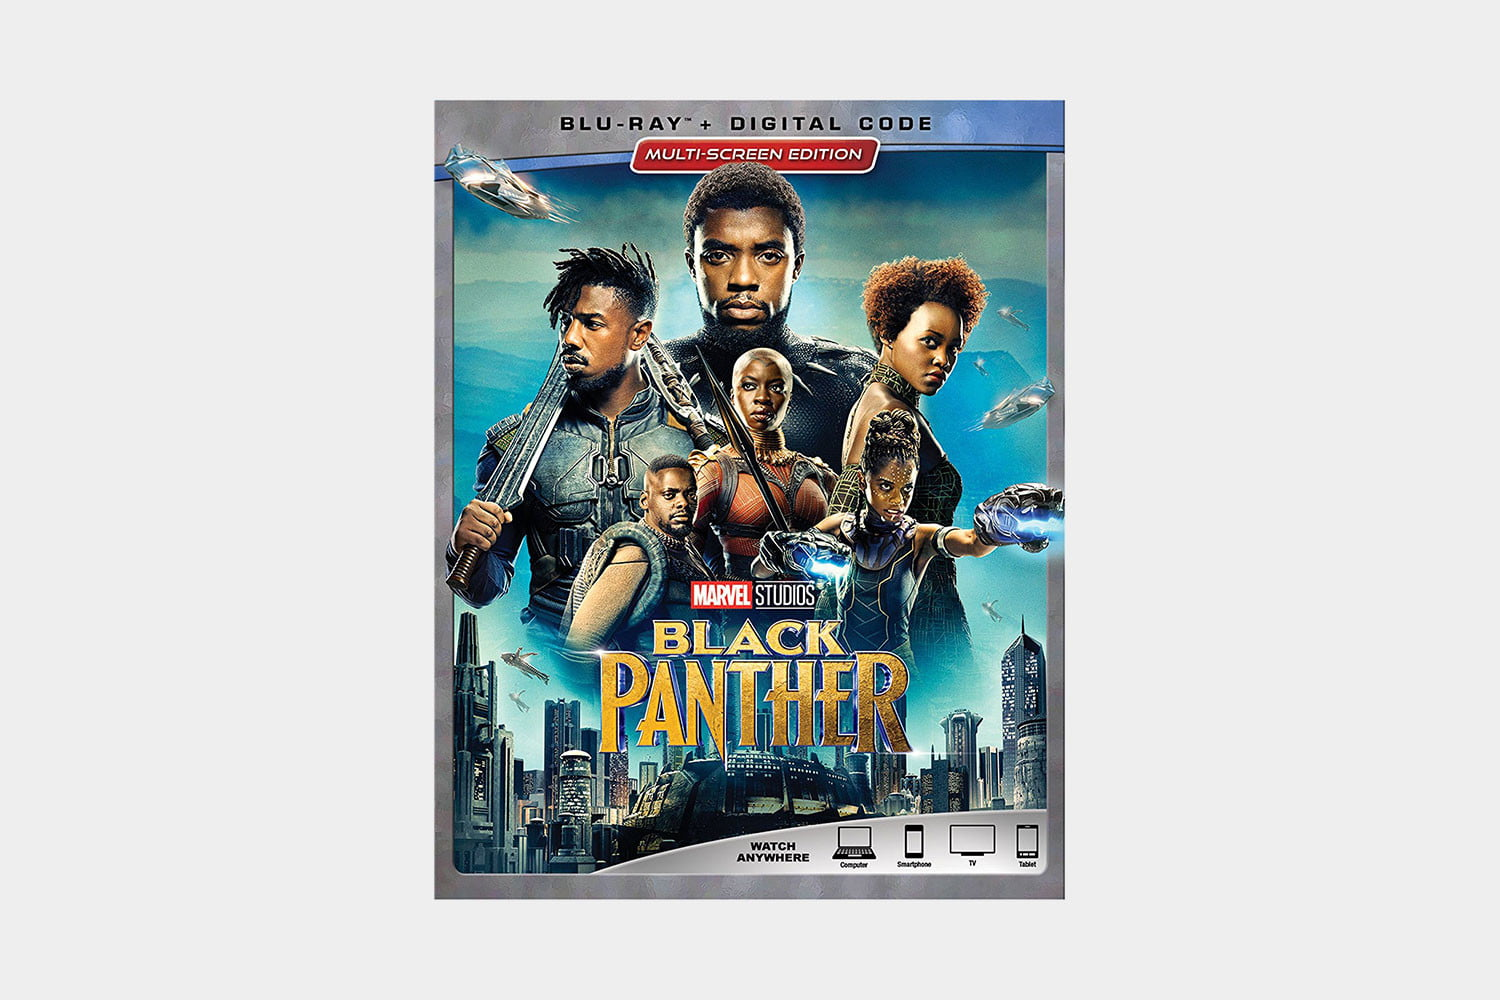 best blu ray discs show home theater black panther cover